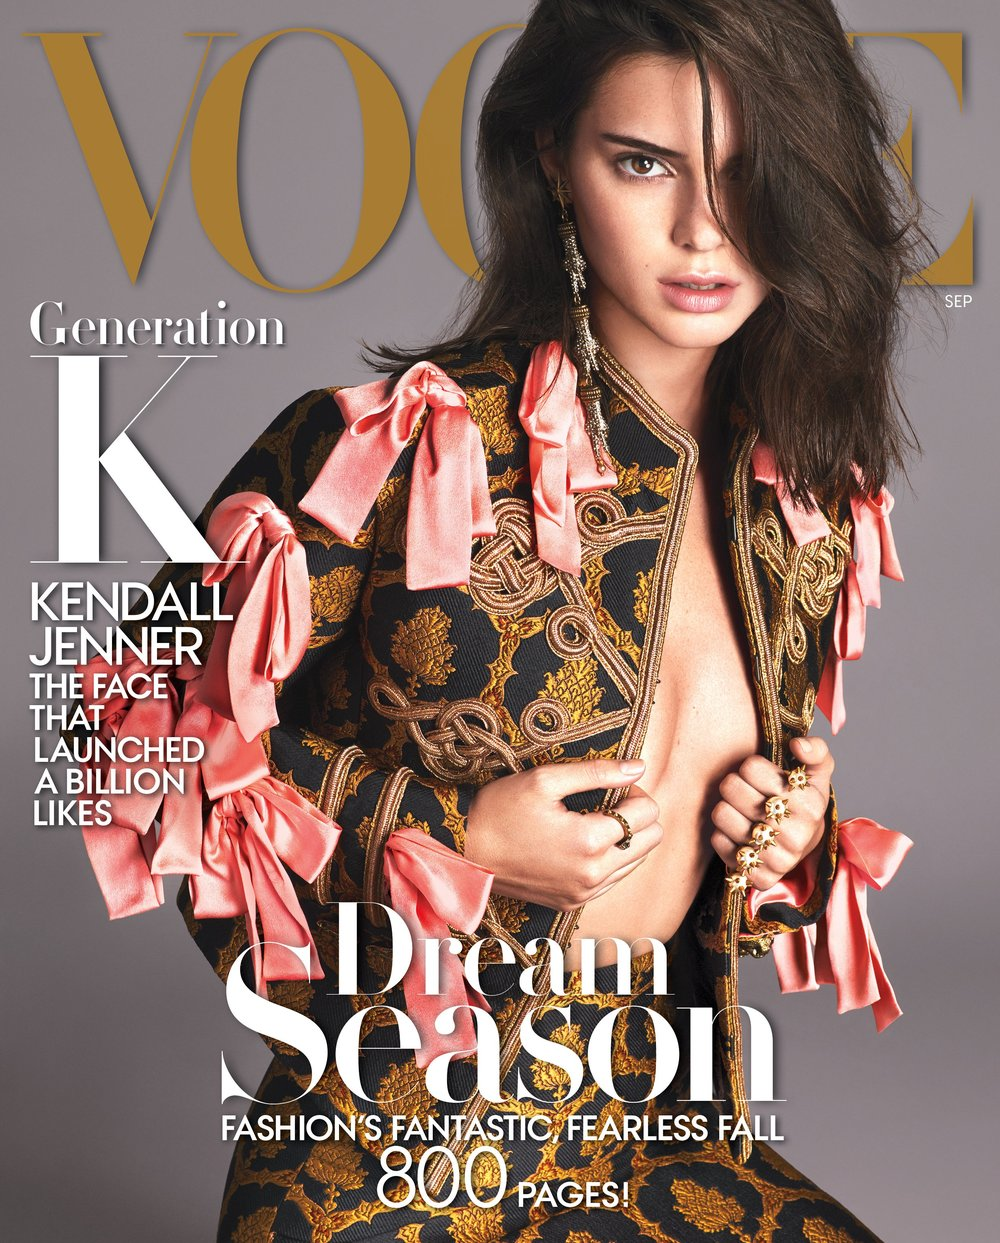 kendall-jenner-2016-september-cover-vogue.jpg